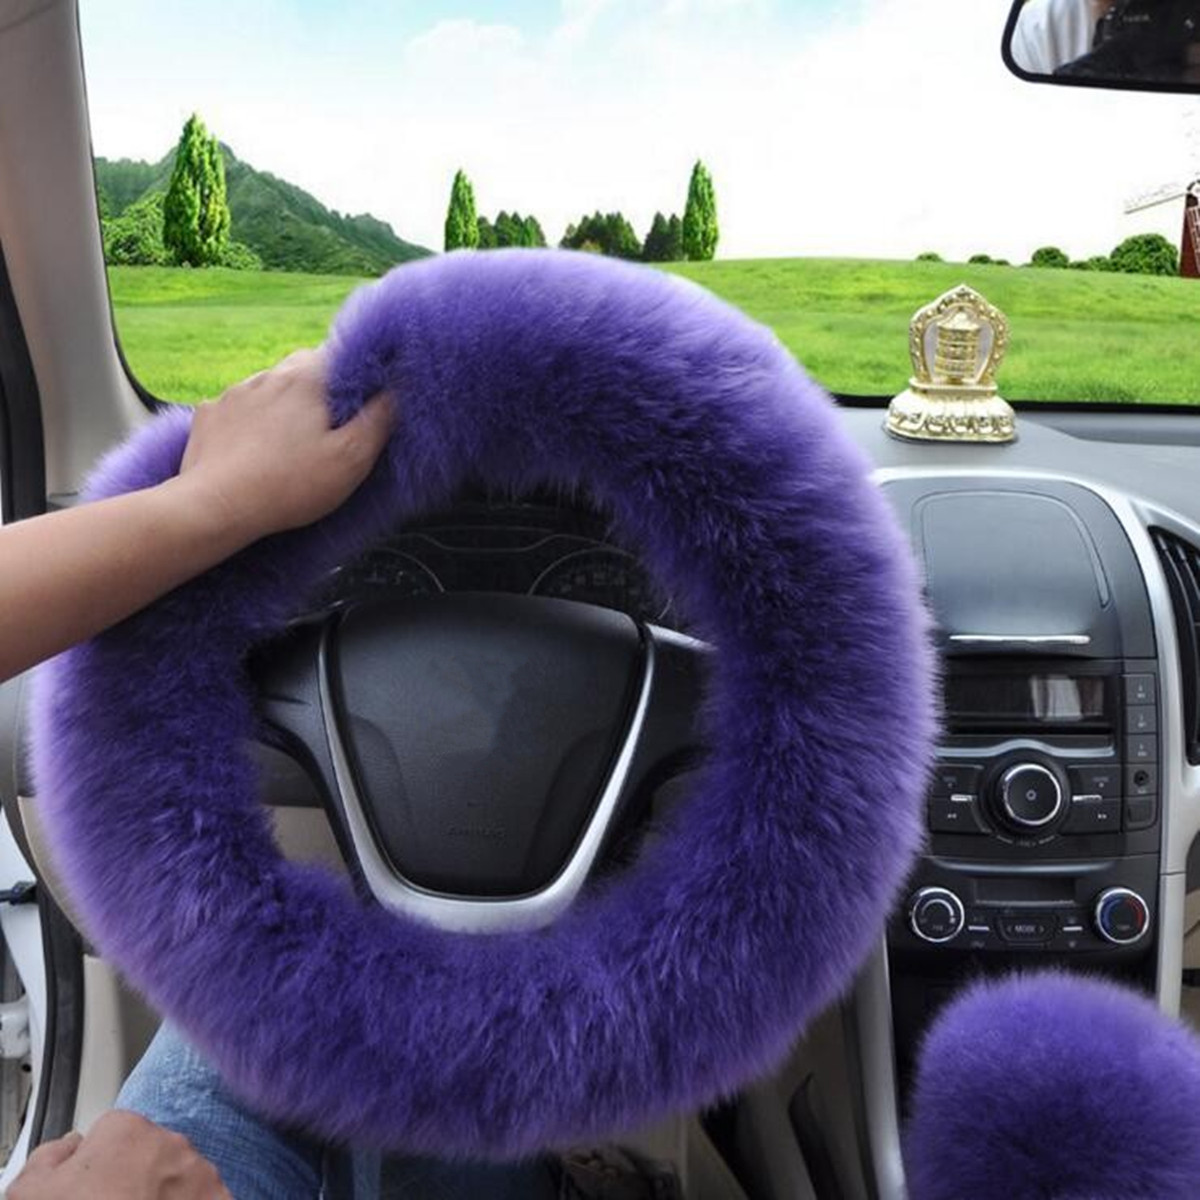 3pcs Auto Car Furry Steering Wheel Cover Set Fashion Car Accessories Decor Gift Winter Warm